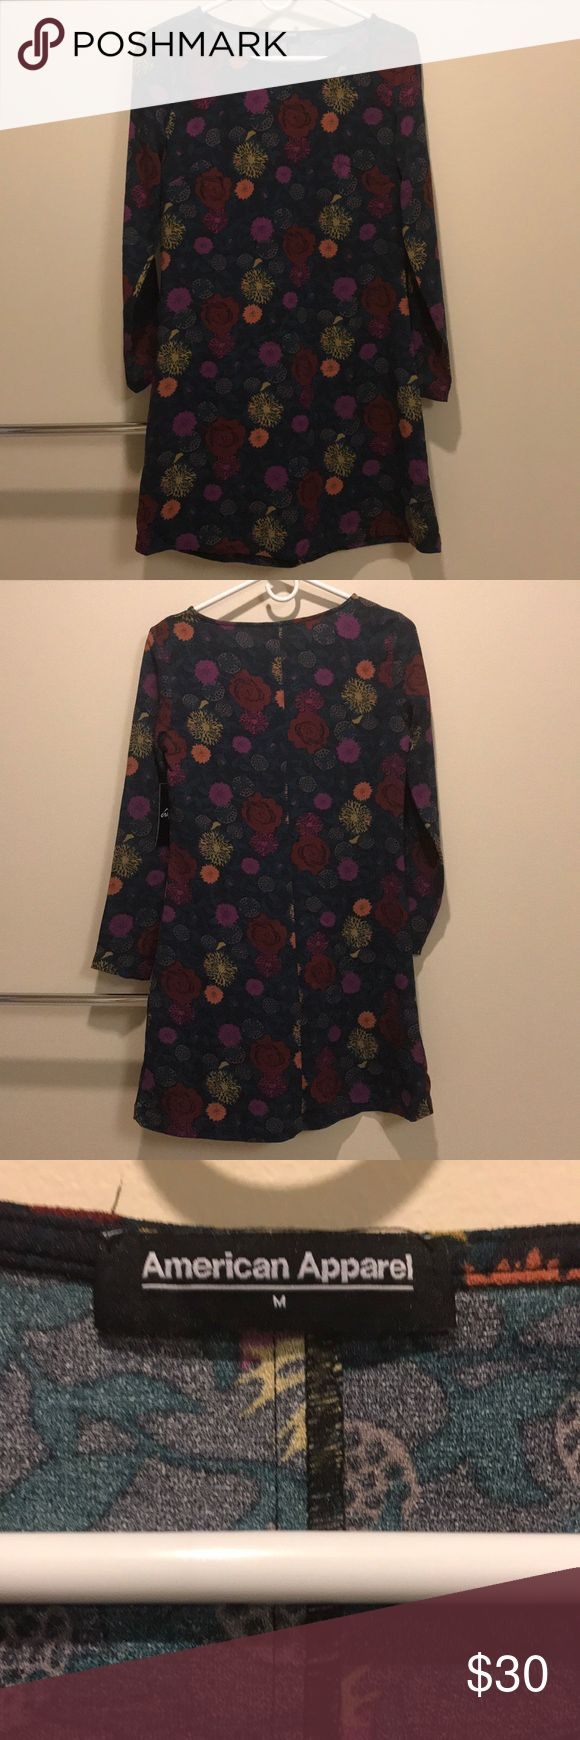 BNWT American Apparel long sleeve floral dress This is for a BNWT american Apparel size medium long sleeve floral dress. It has blues, yellows, reds, pinks, and oranges through the dress. It is 95% polyester and 5% elastane. American Apparel Dresses